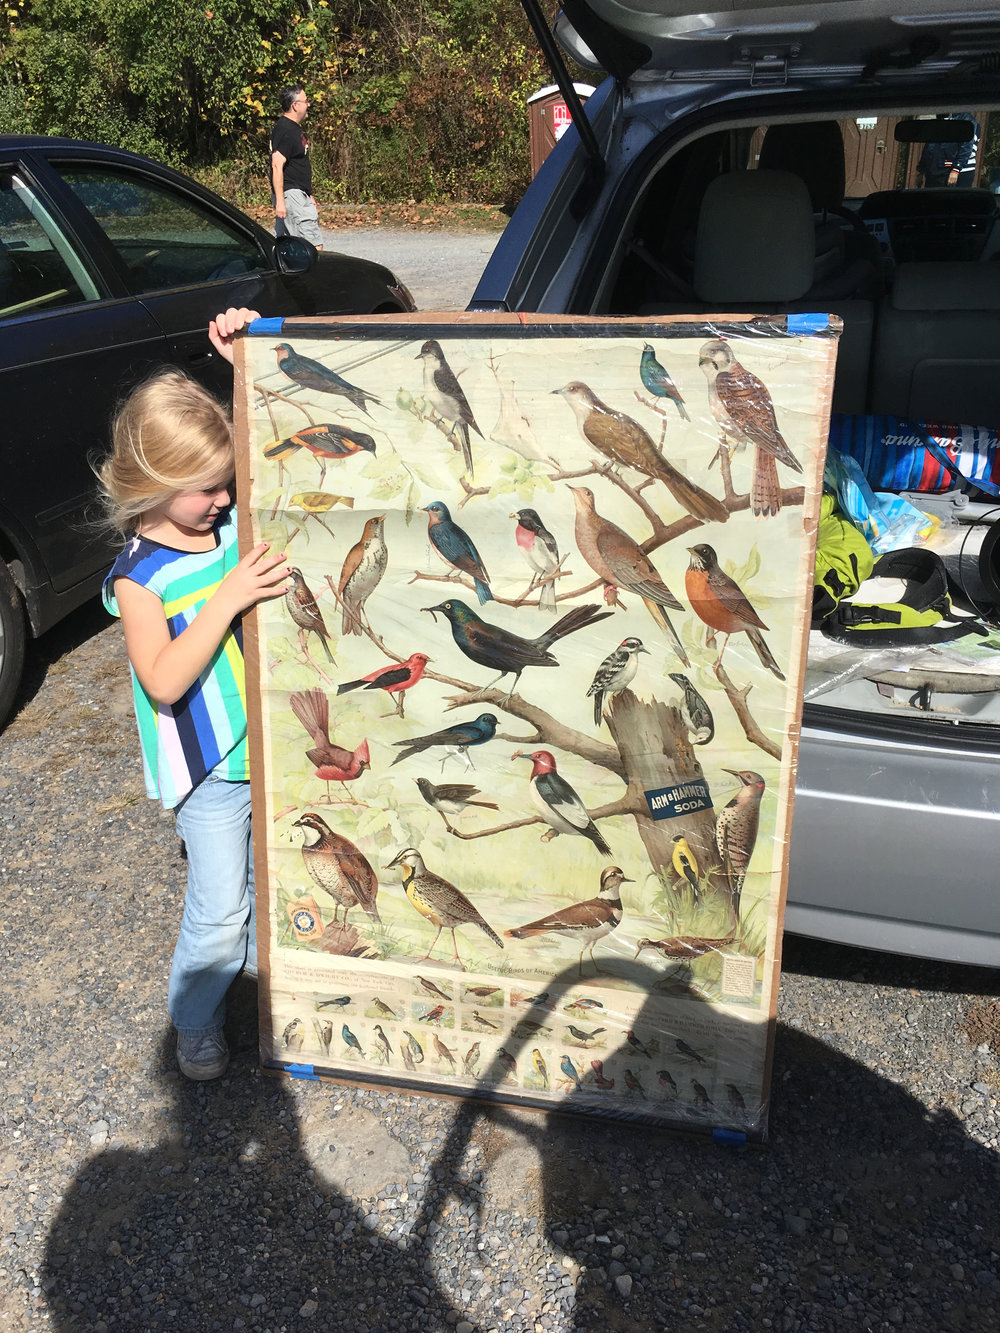 Emmeline holding one of my best flea market finds - a vintage Arm & Hammer bird identification chart from 1912. I paid $25 and I found the same one on ebay for $400!